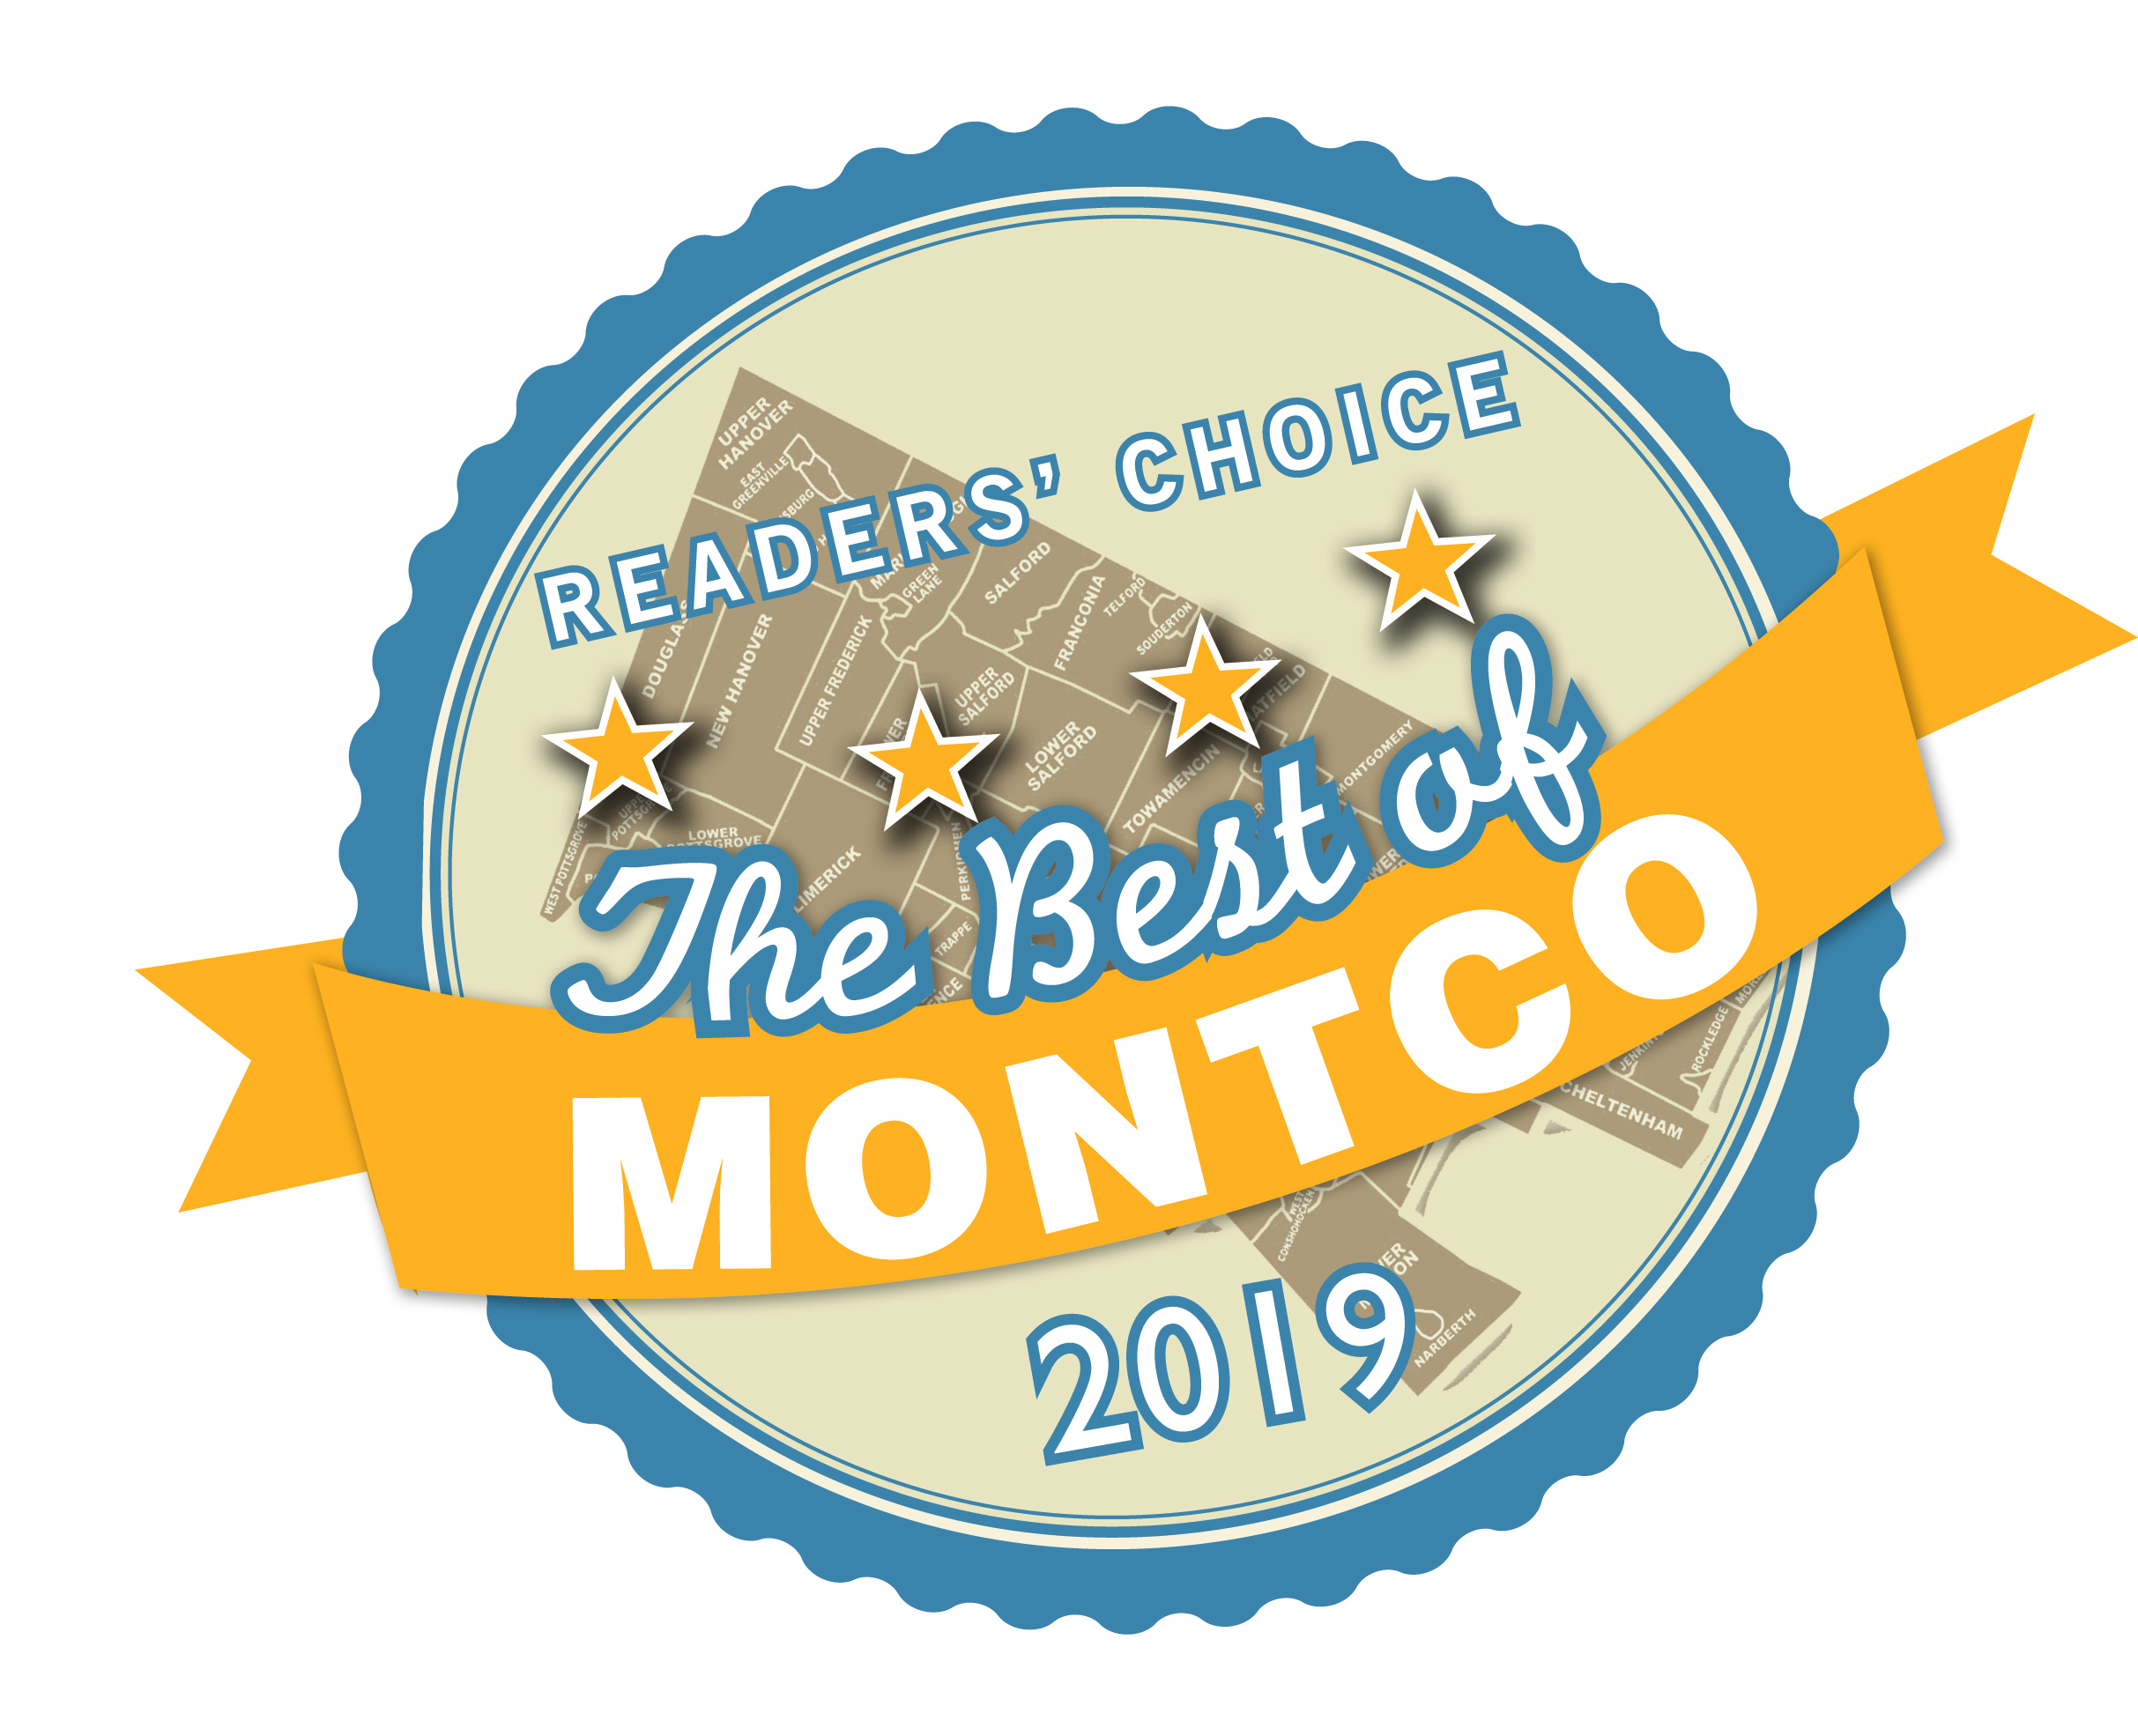 Best of Montco 2019 logo